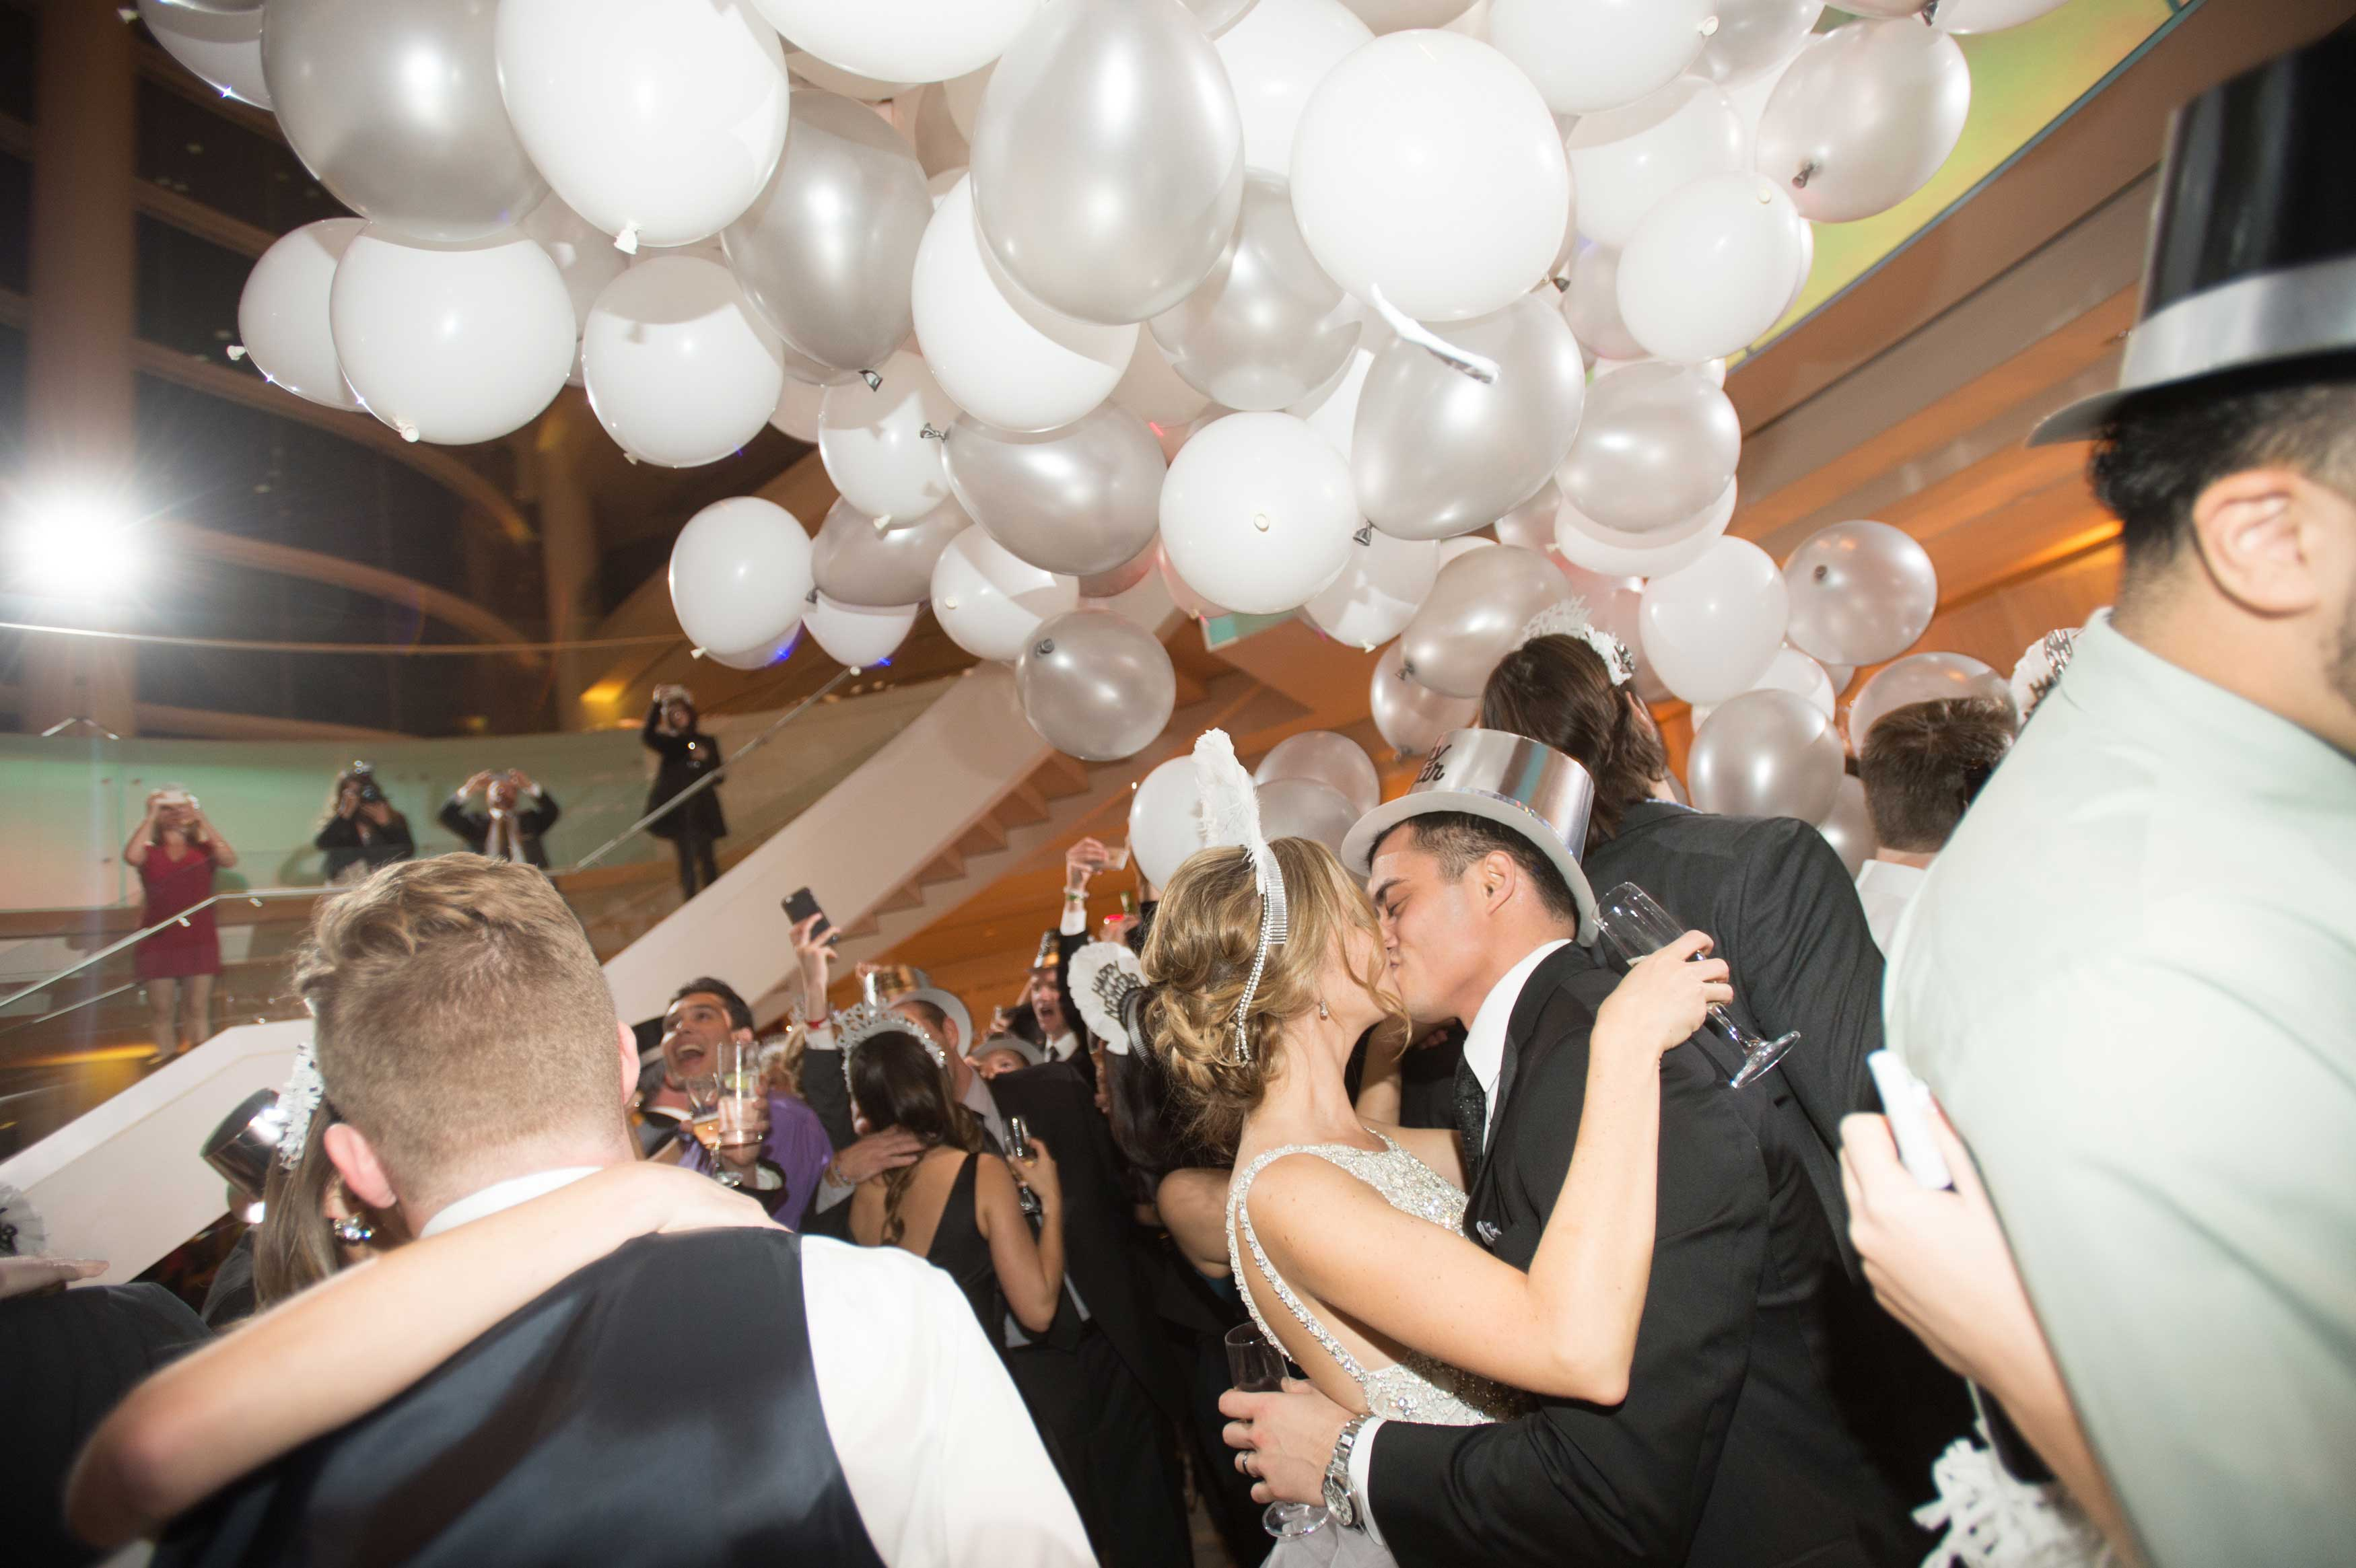 Balloon drop on New Year's Eve for NYE wedding reception